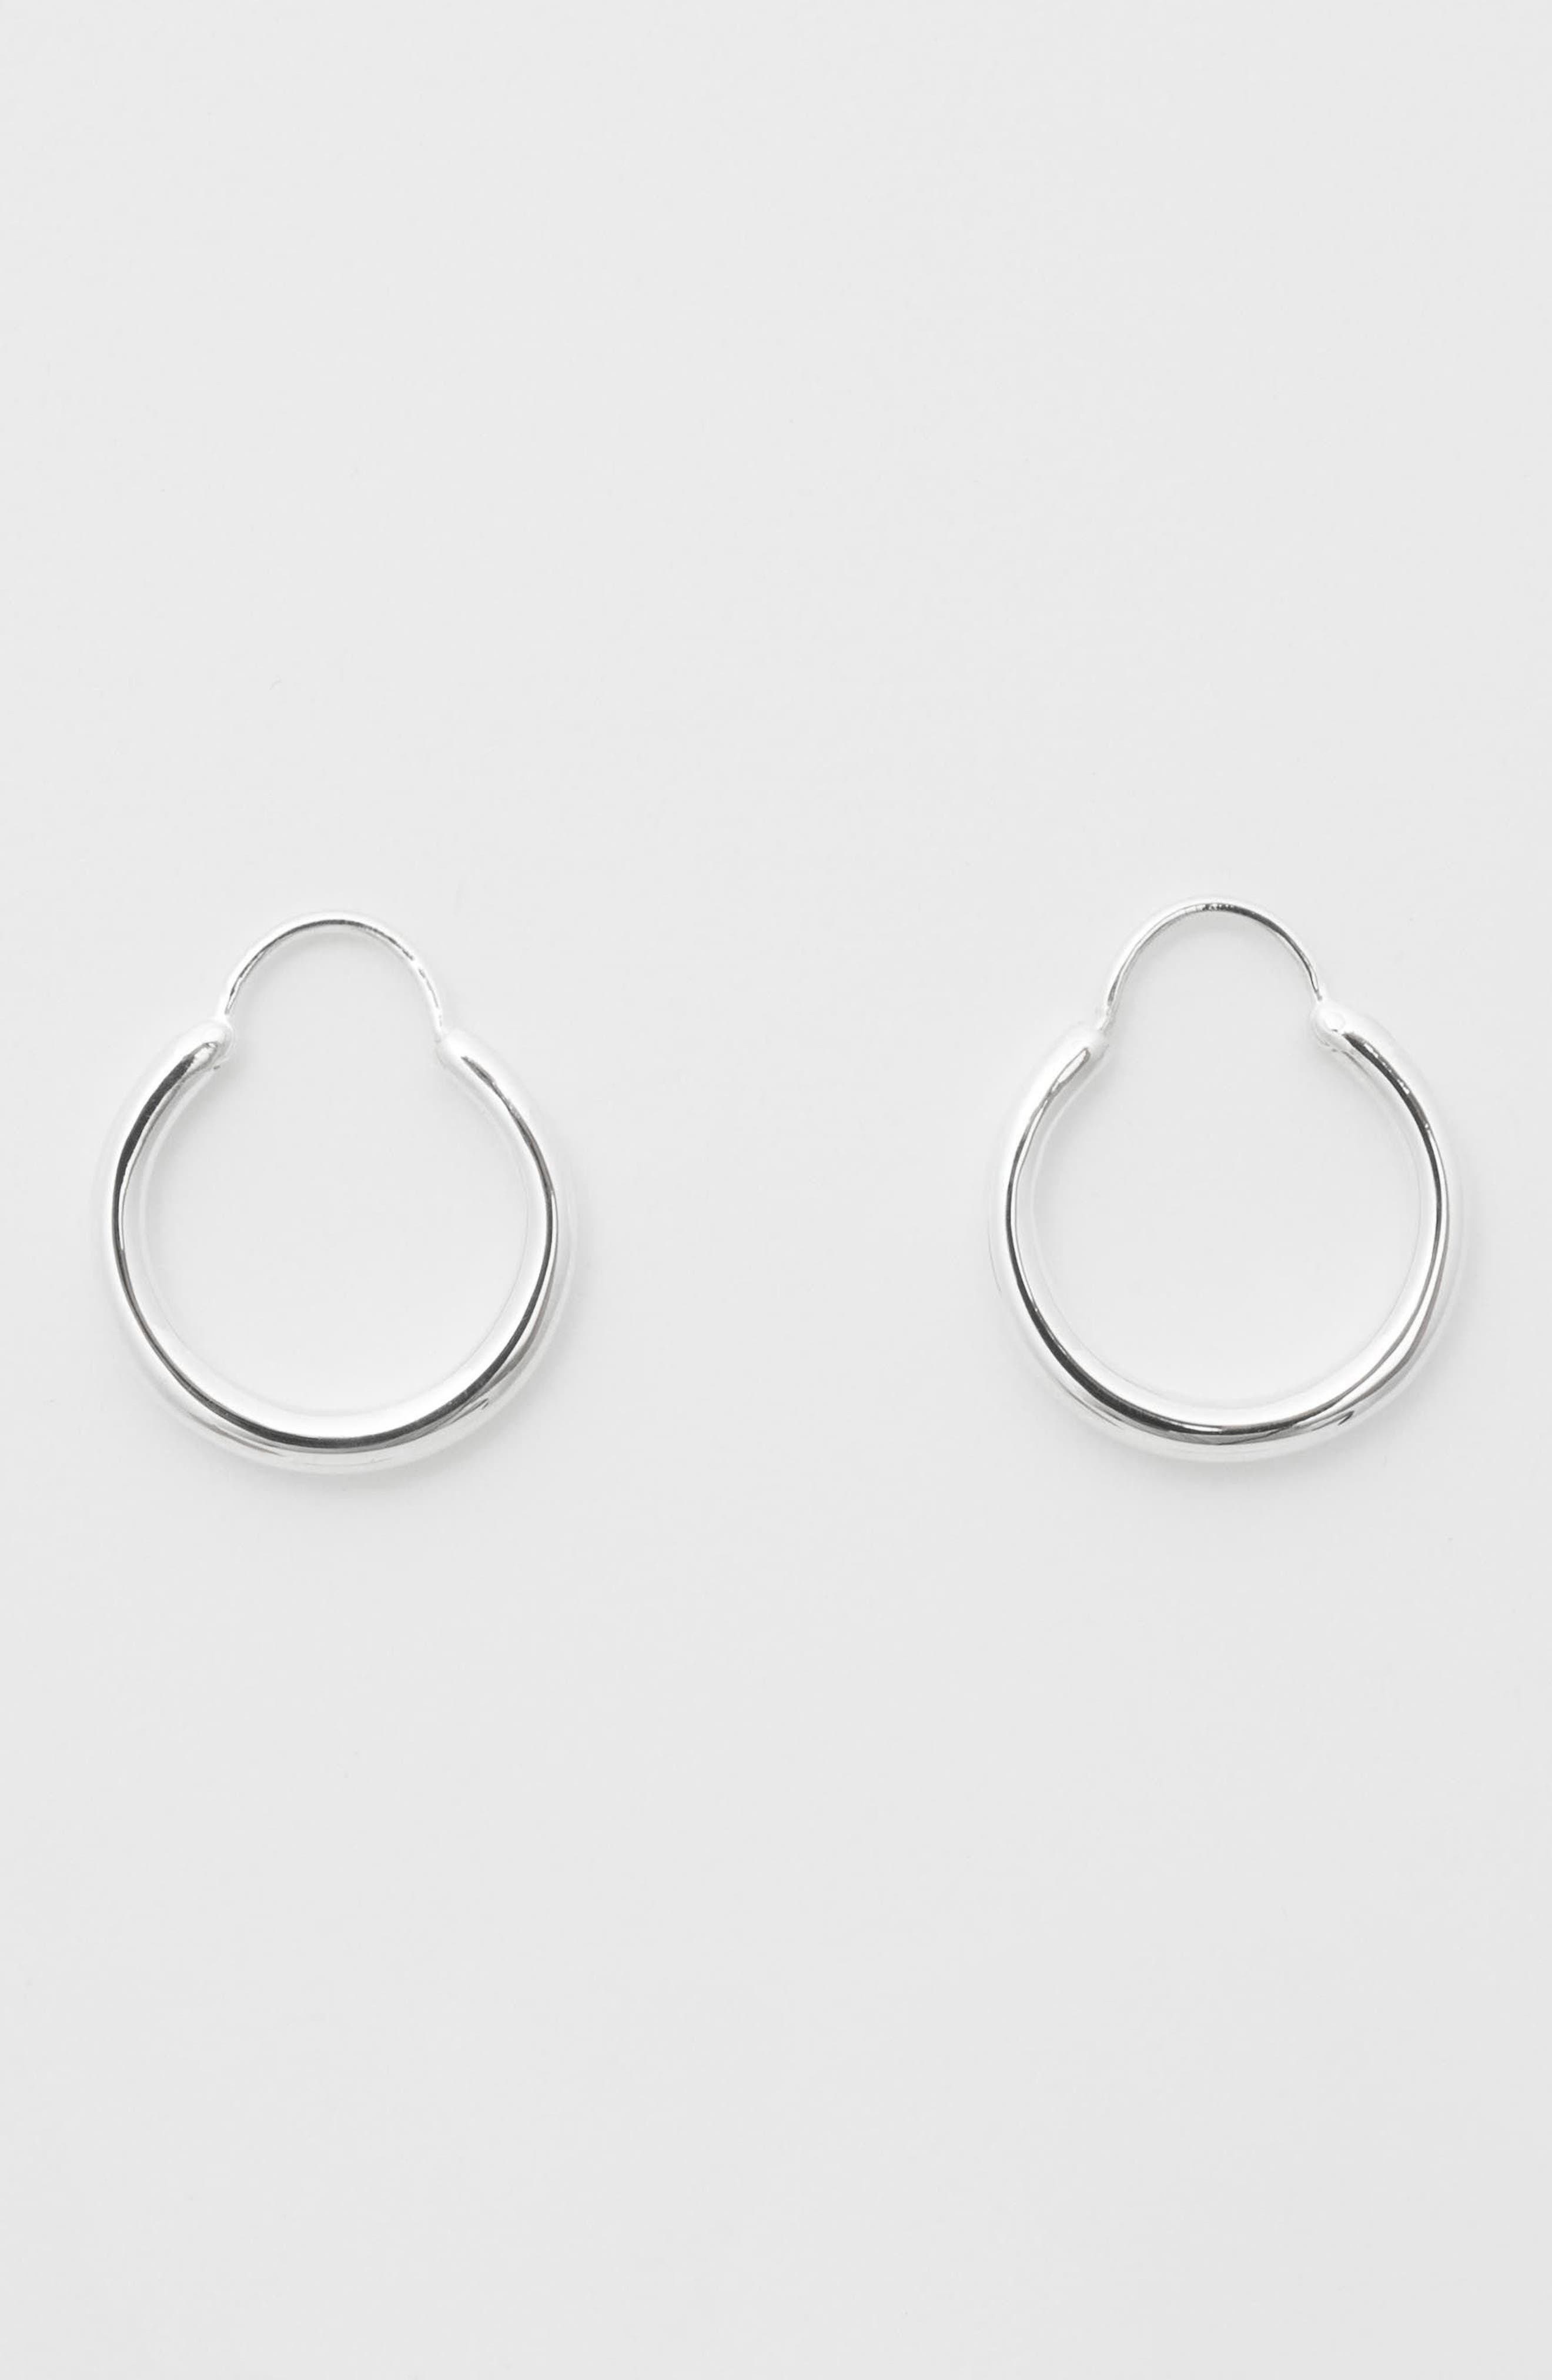 Small Snake Polished Earrings,                             Alternate thumbnail 3, color,                             Polished Silver